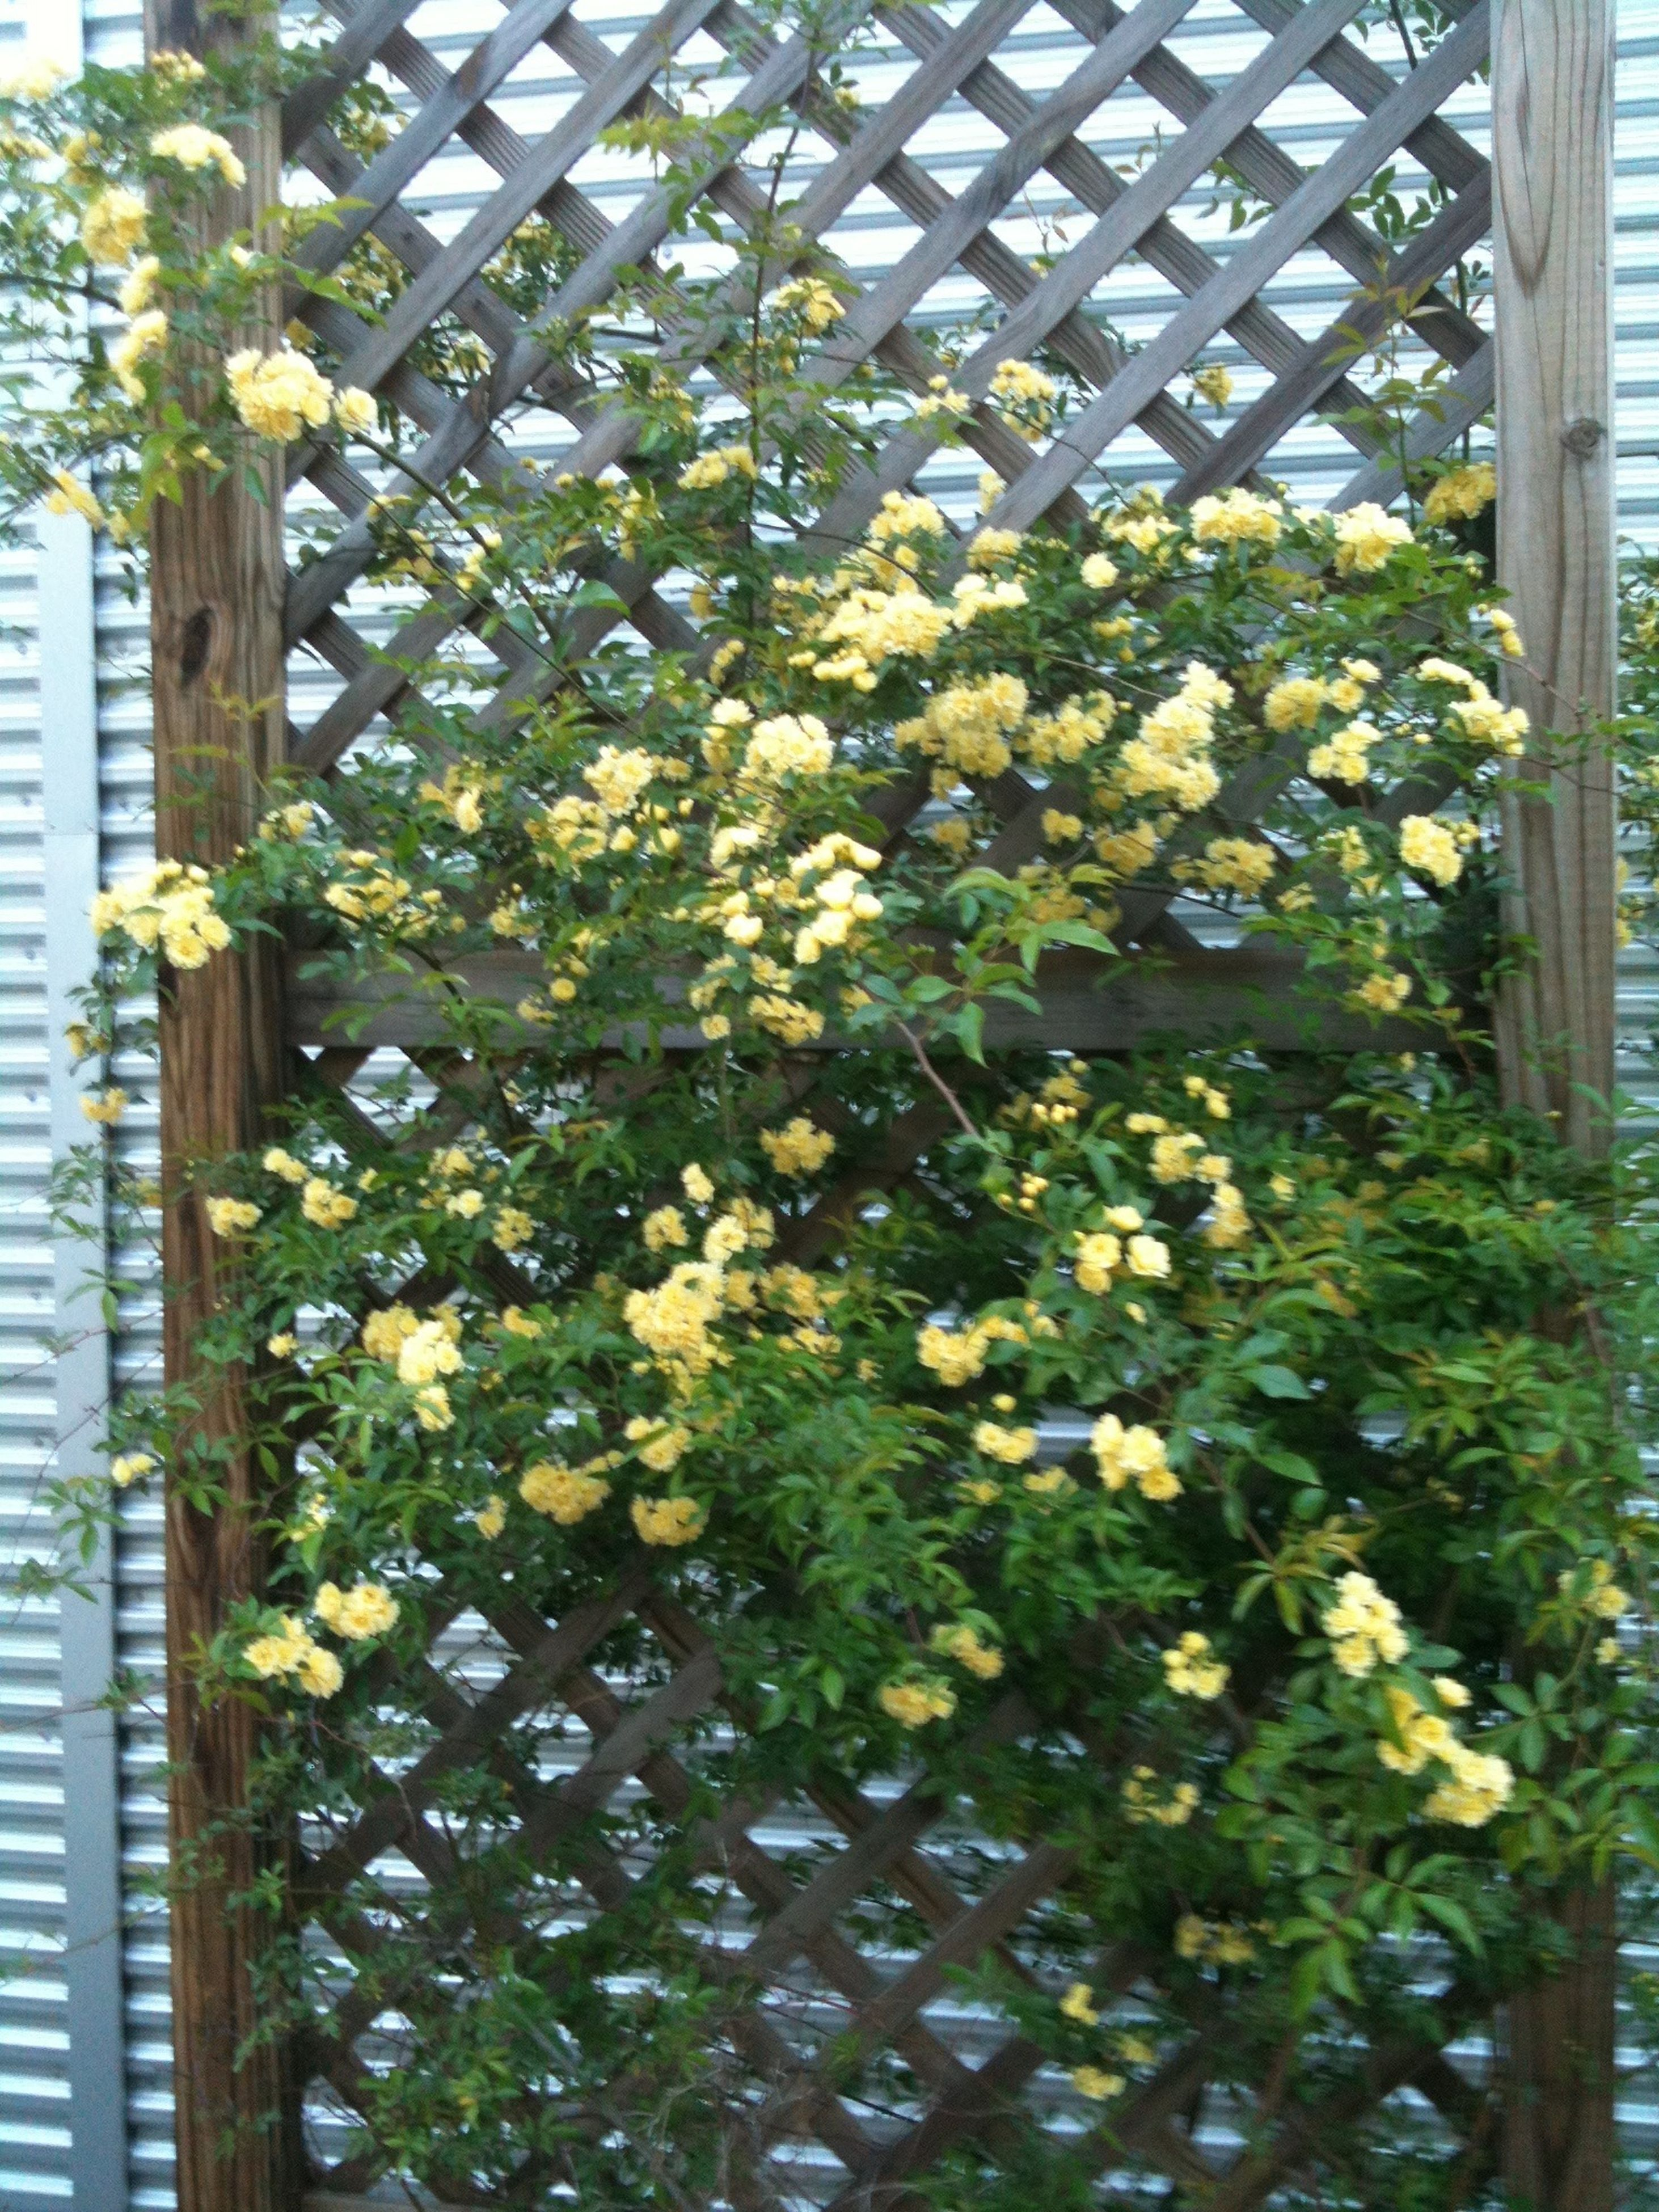 flower, growth, freshness, plant, leaf, fragility, nature, beauty in nature, fence, potted plant, petal, green color, day, front or back yard, outdoors, in bloom, growing, blooming, wood - material, white color